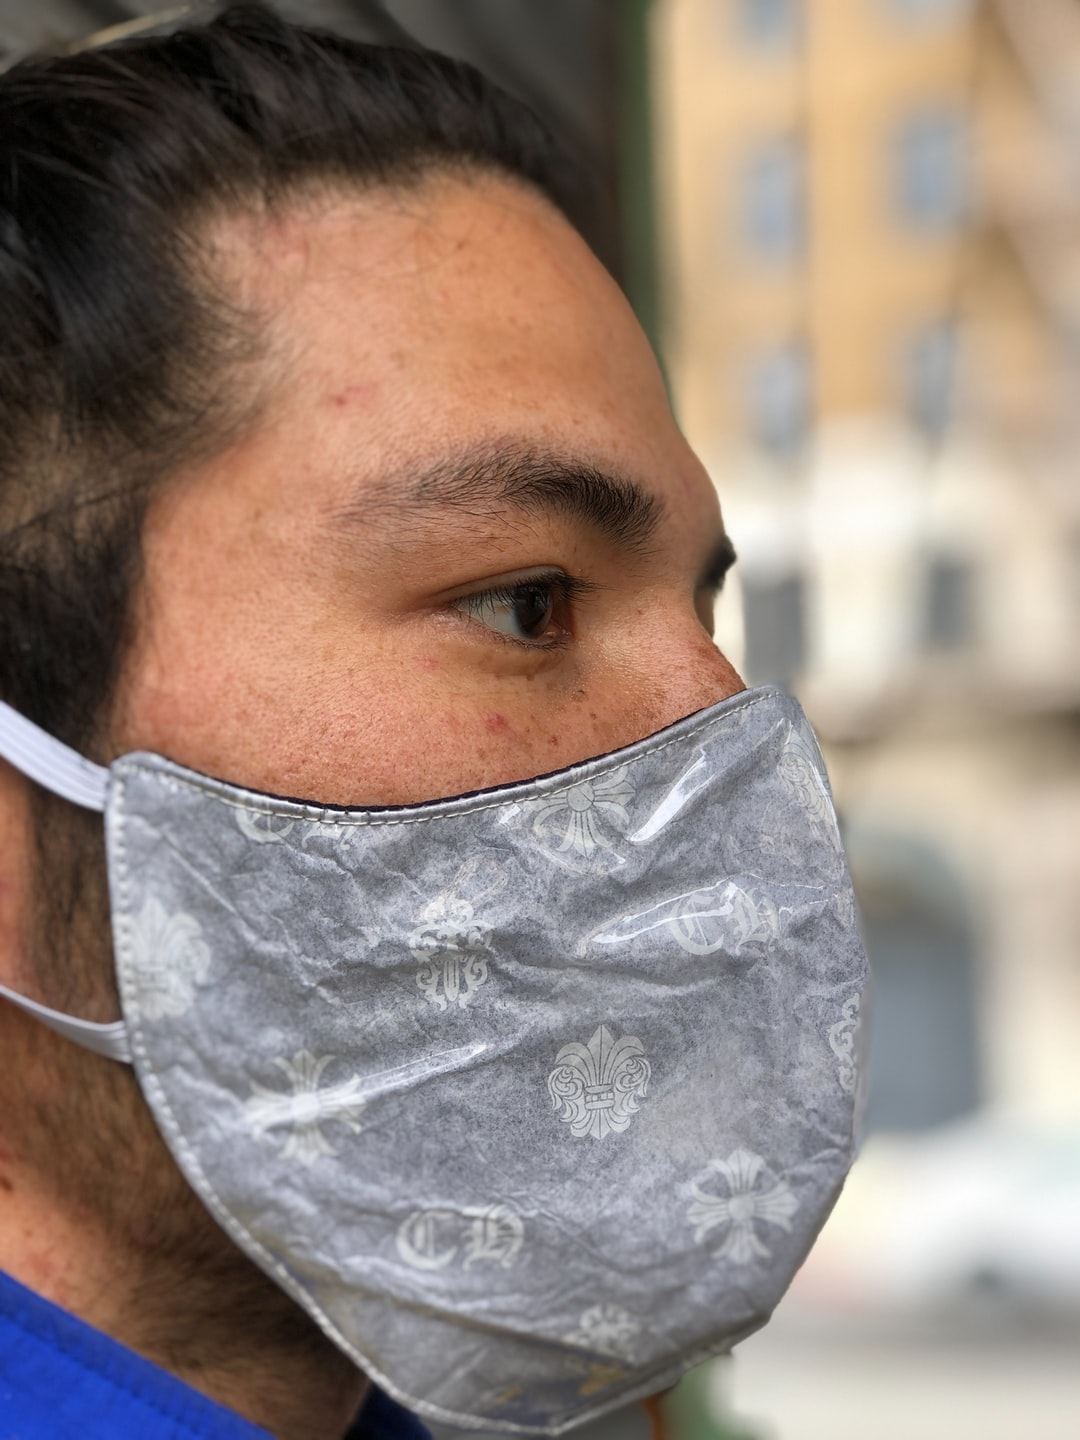 Coronavirus: Face masks could increase risk of infection, medical chief warns